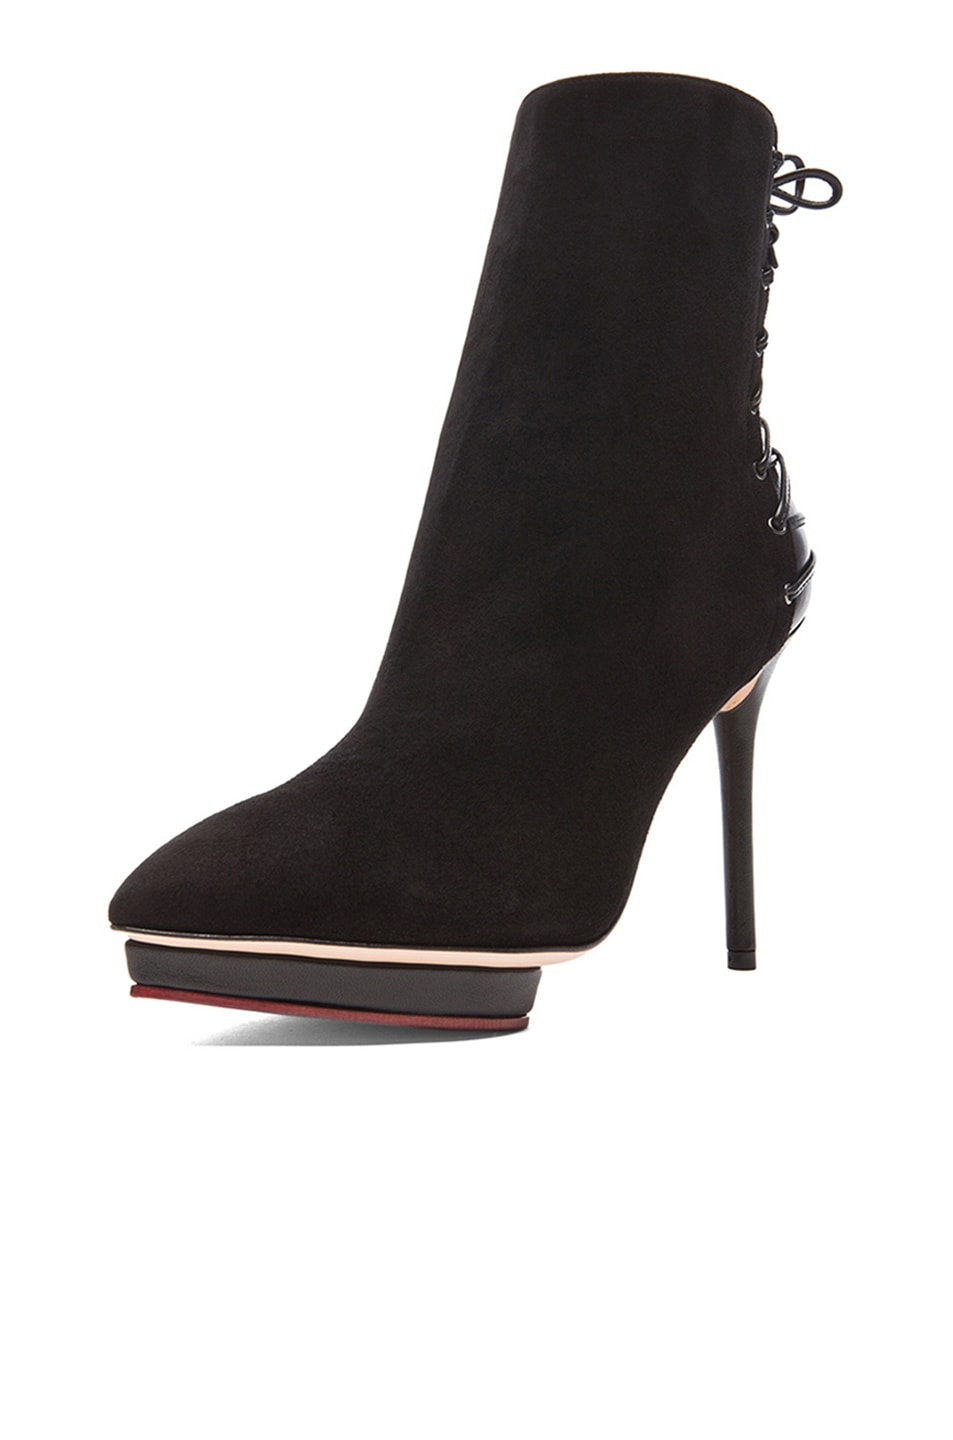 Image 2 of Charlotte Olympia Laced-Up Deborah Suede Booties in Black